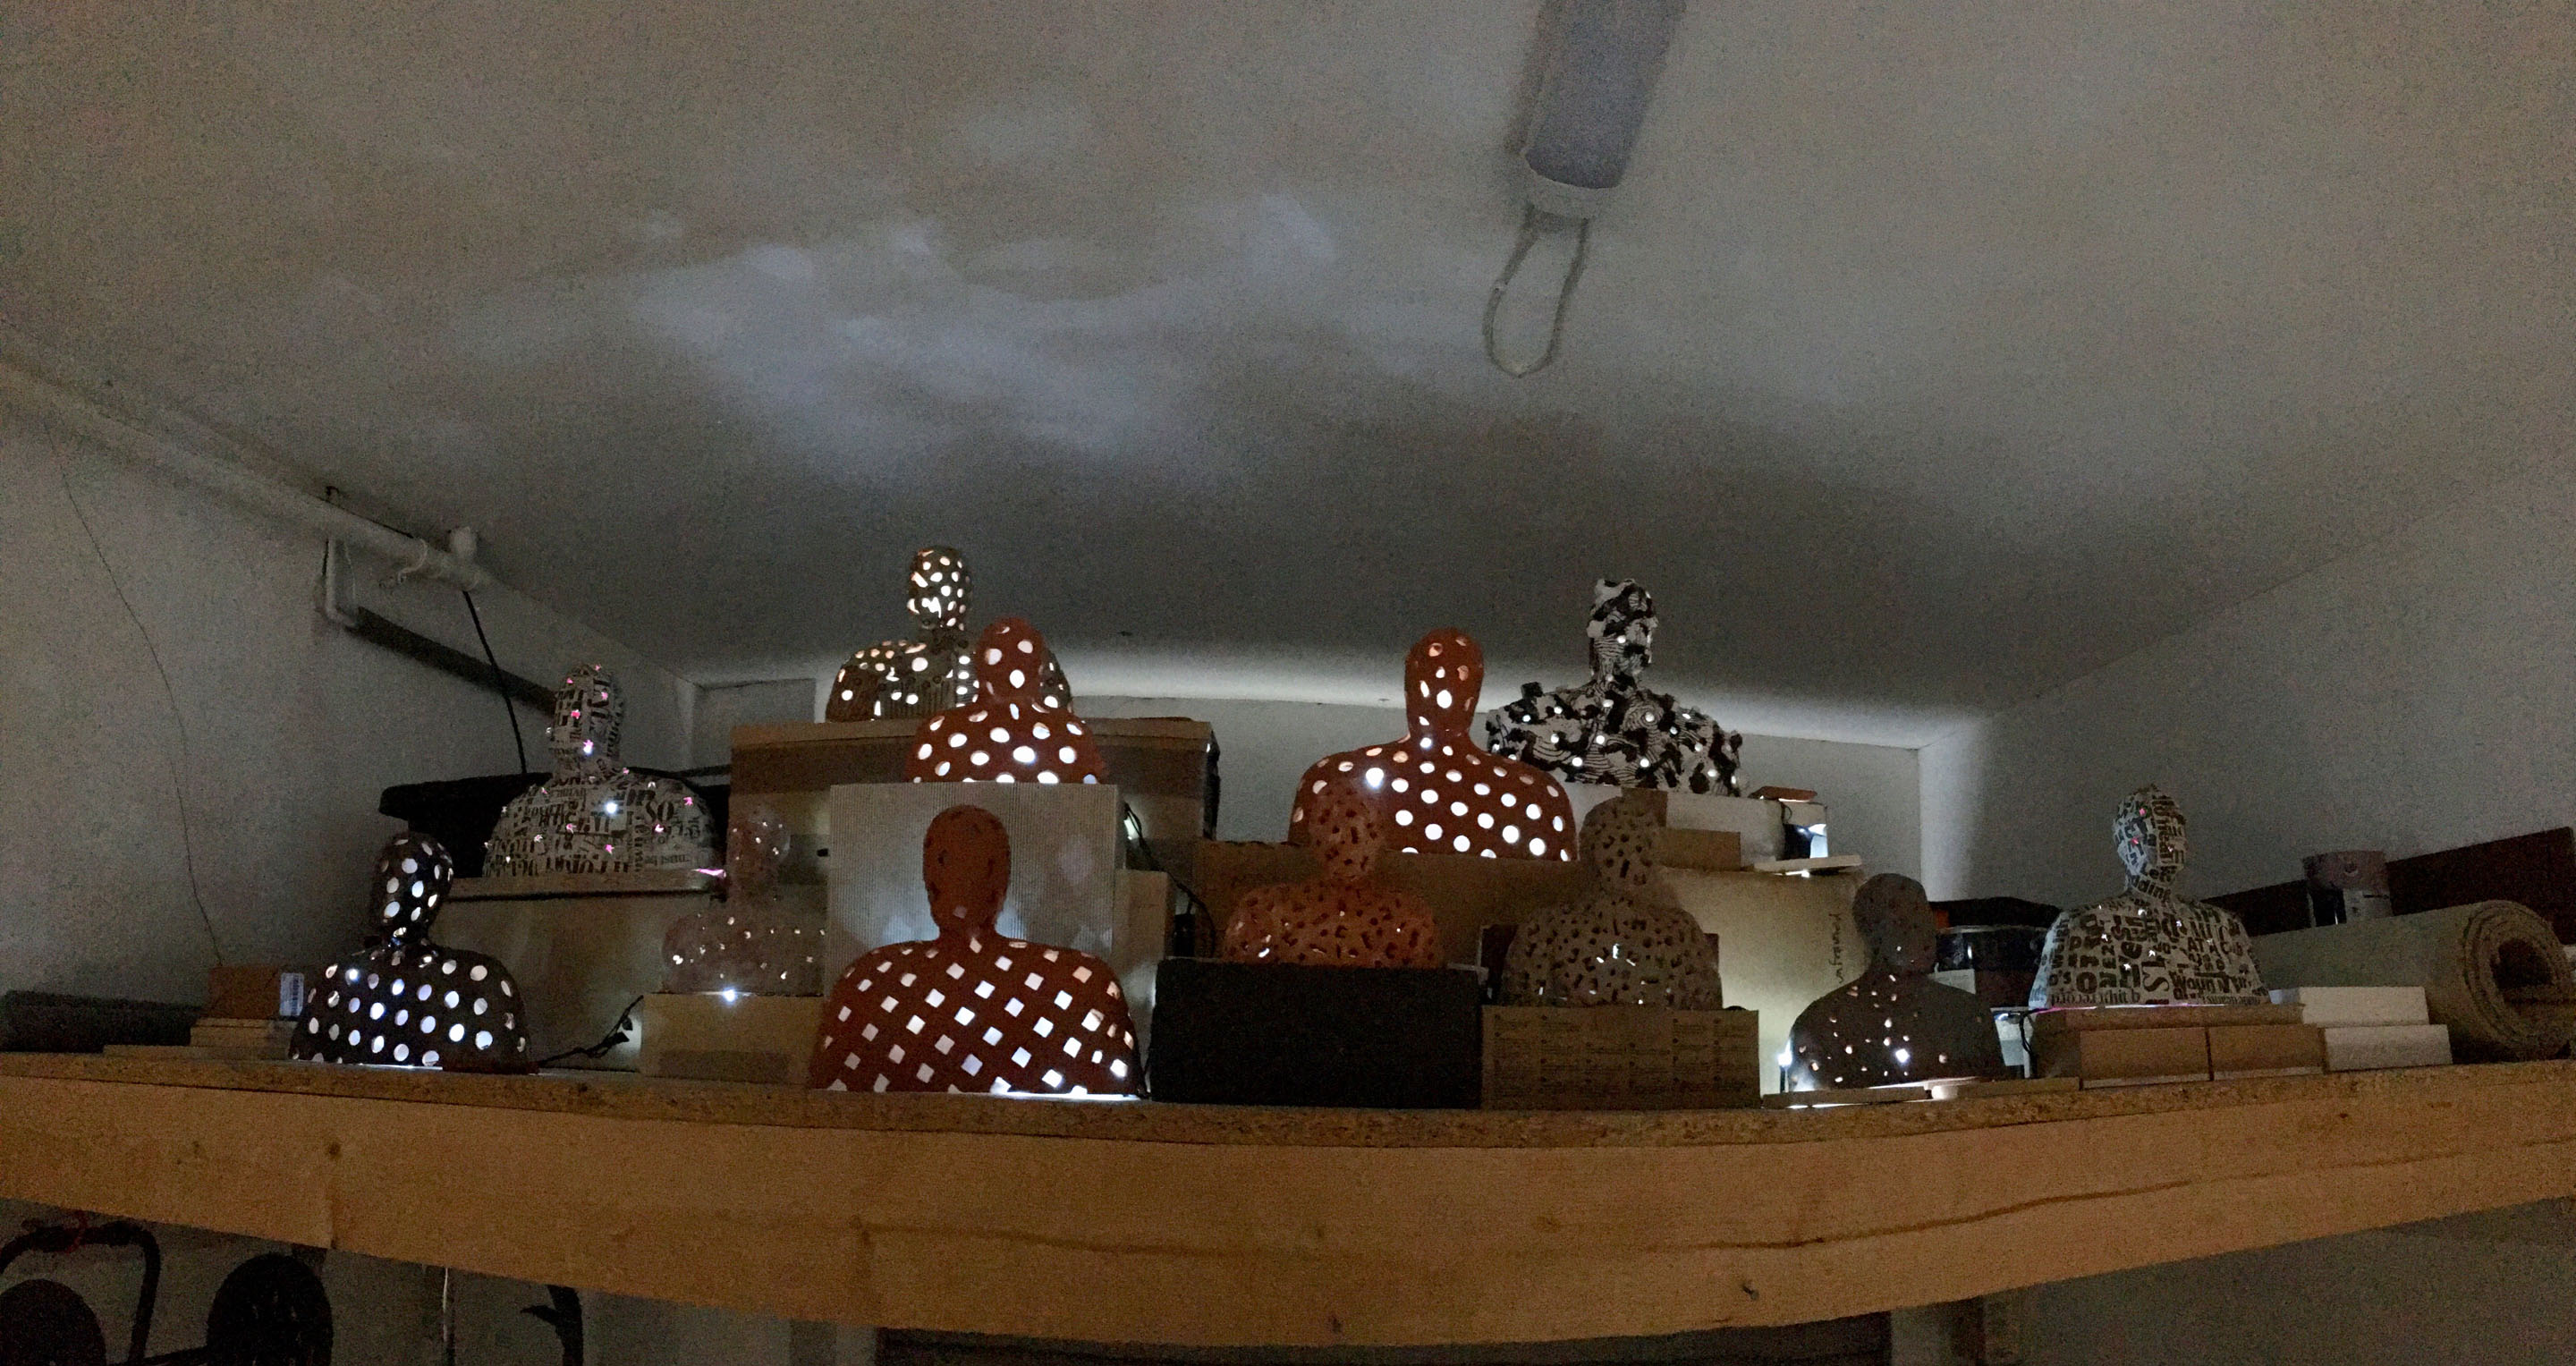 A panorama view of a developing installation of 13 or more figures in glazed and unglazed terra-cotta, plaster and papier mache illuminated by LED lights on stands made of cardboard and mdf